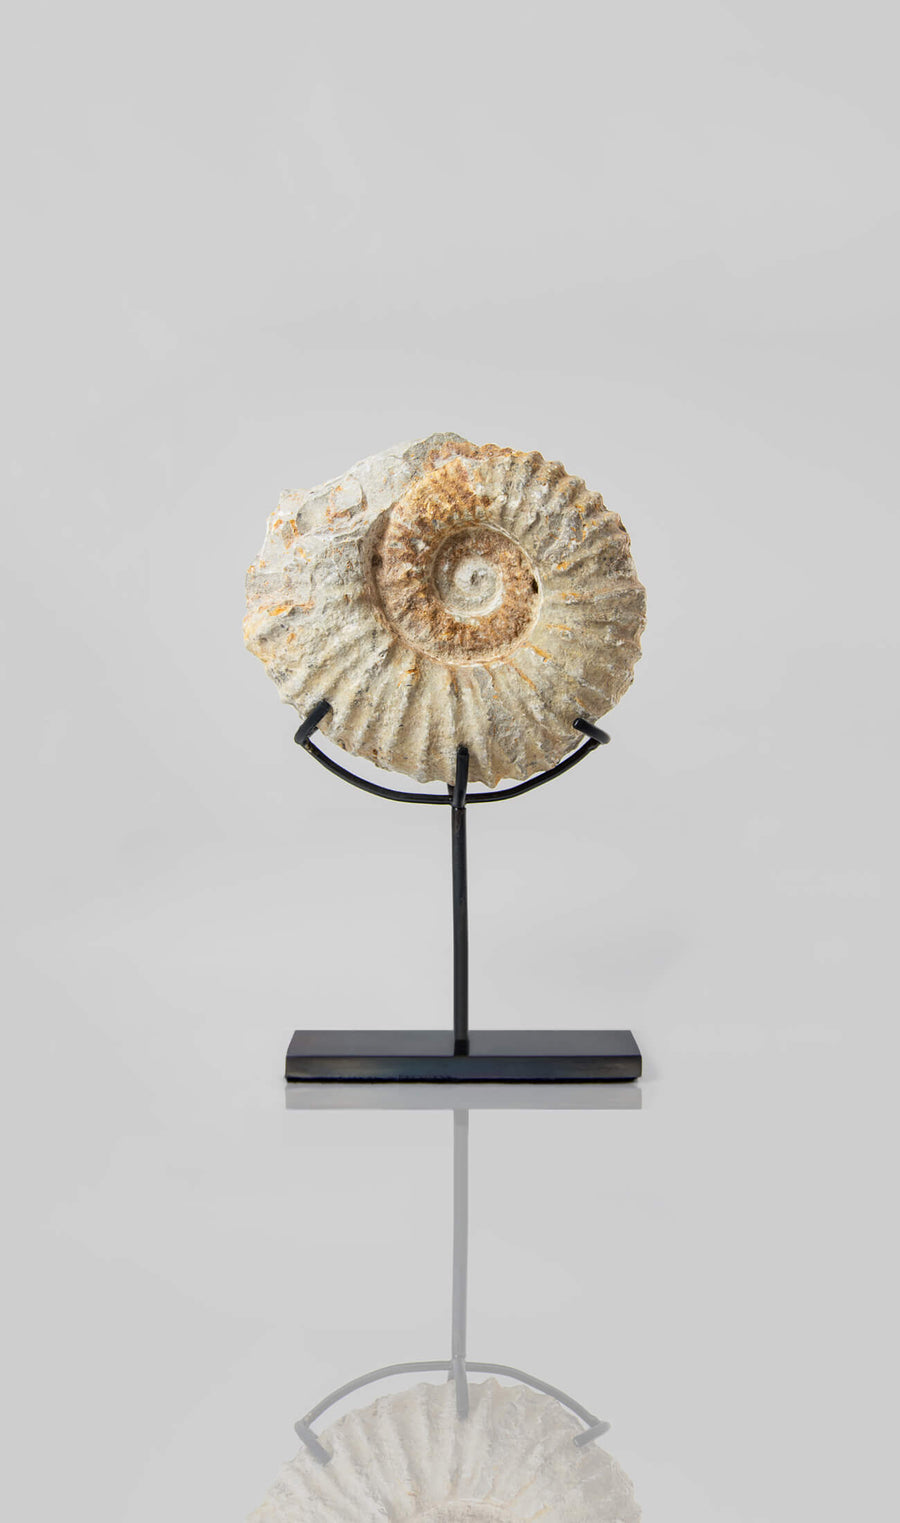 Beautifully presented Mantelliceras ammonite fossil for sale measuring 188mm on our custom designed bronze stand